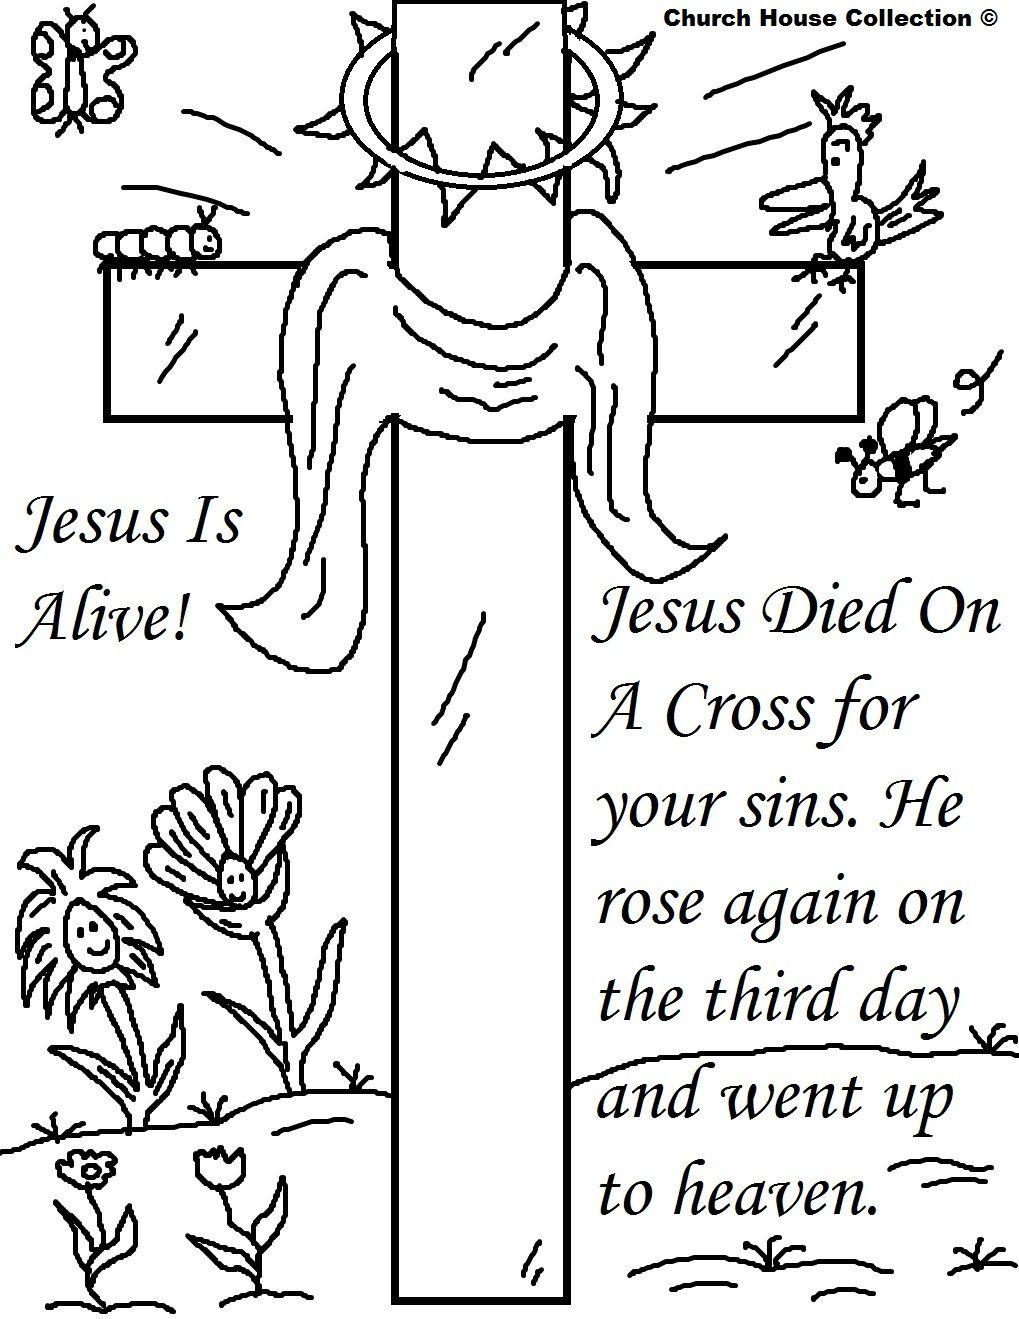 Easter Coloring Sheet Sunday School Coloring Pages Easter Coloring Sheets Coloring Pages Inspirational